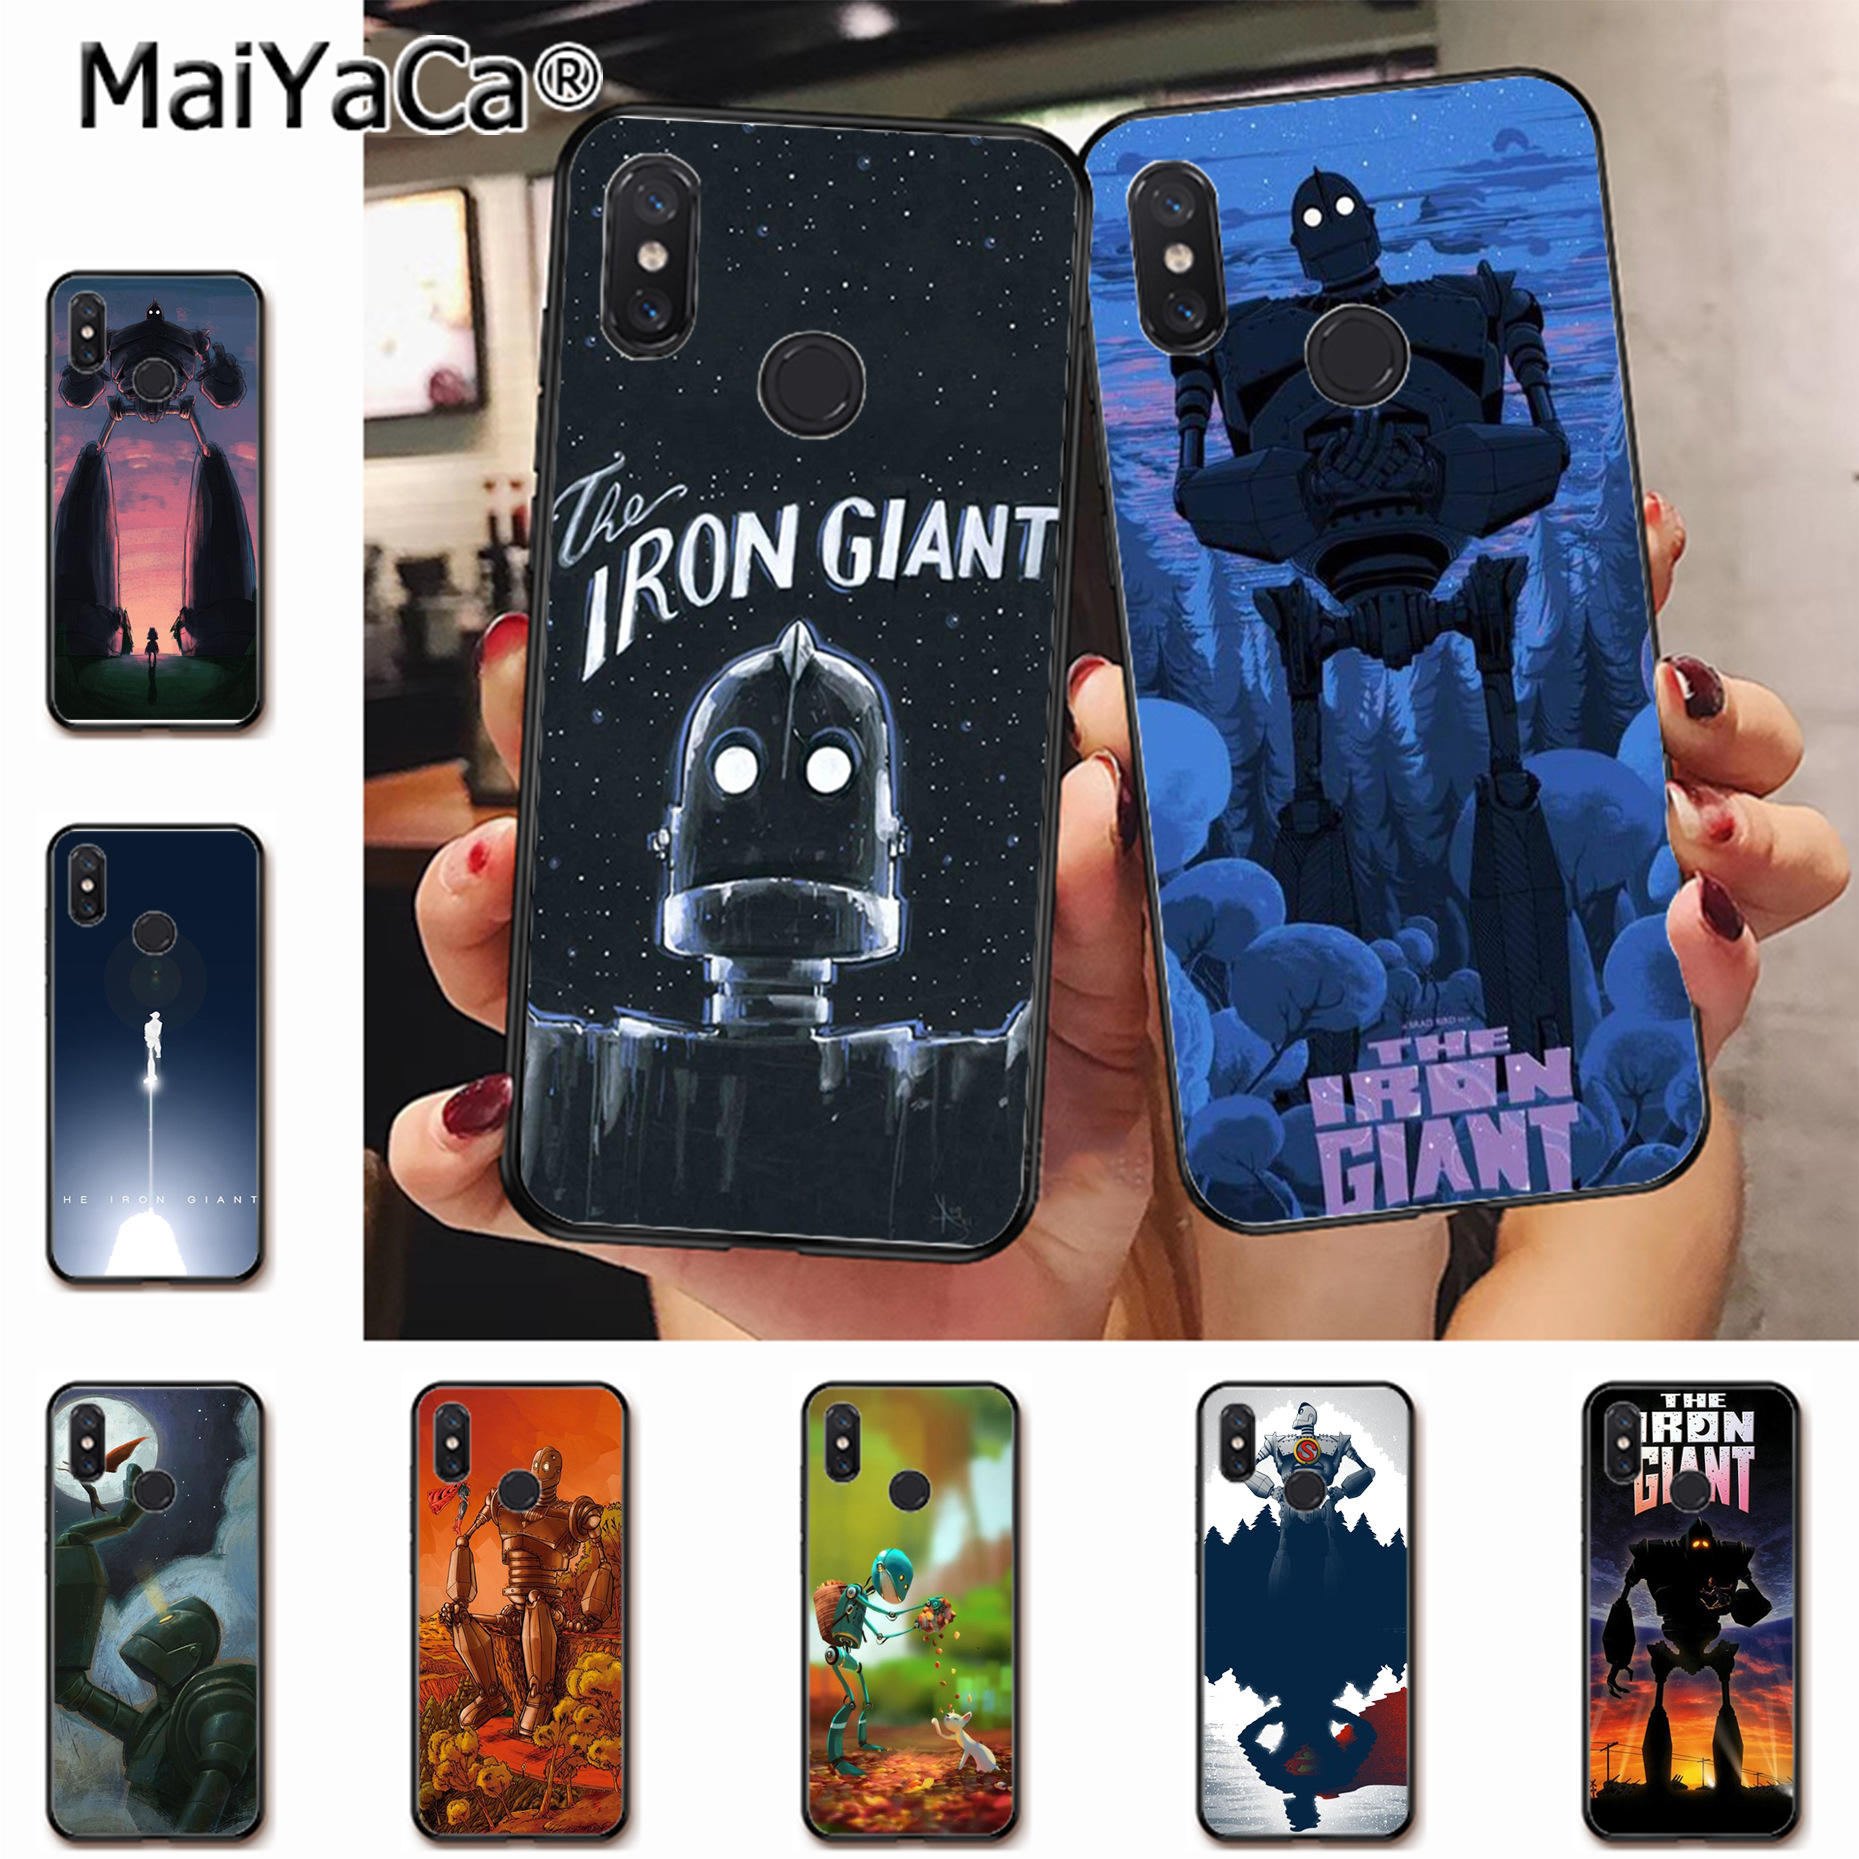 MaiYaCa The Iron Giant 1999 Best Art Ever Advanced Phone Case for xiaomi mi 6 8 se note2 3 mix2 redmi 5 5plus note 4 5 5 case image